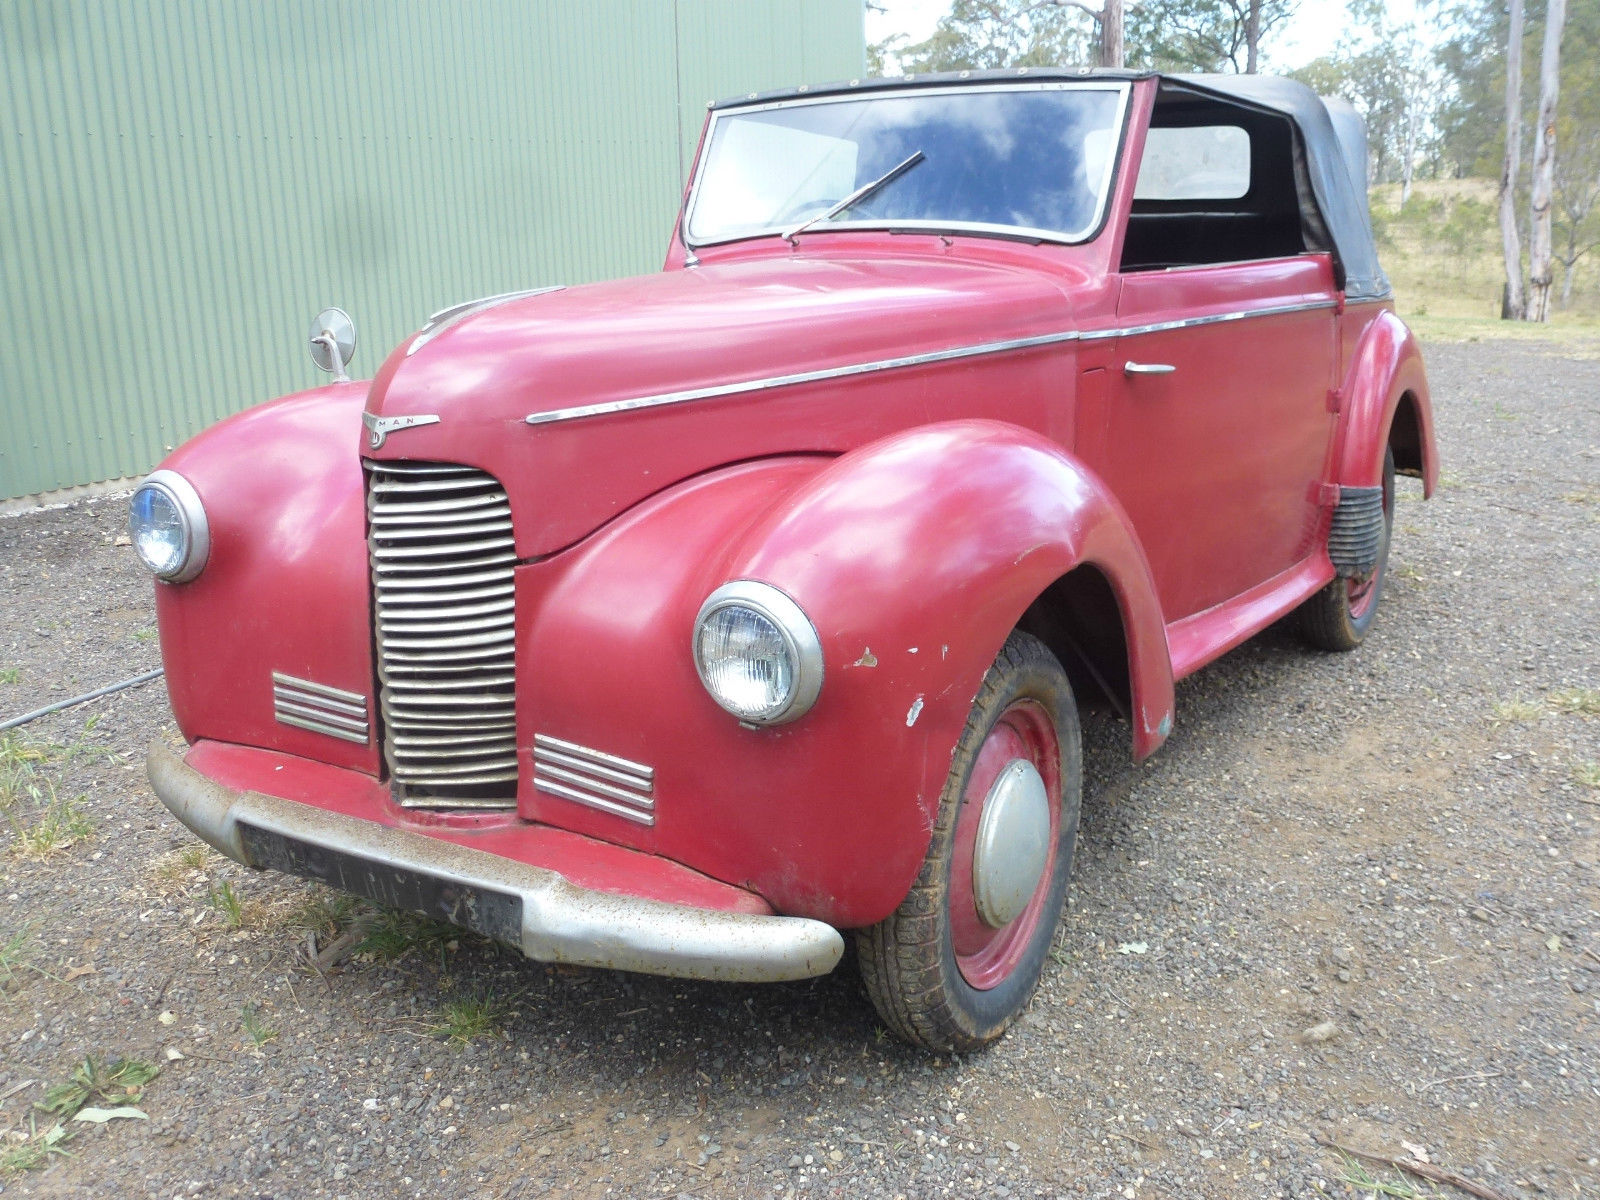 Could Some One Photoshop My 1948 Hillman Minx Coupe? Please? - BoostCruising